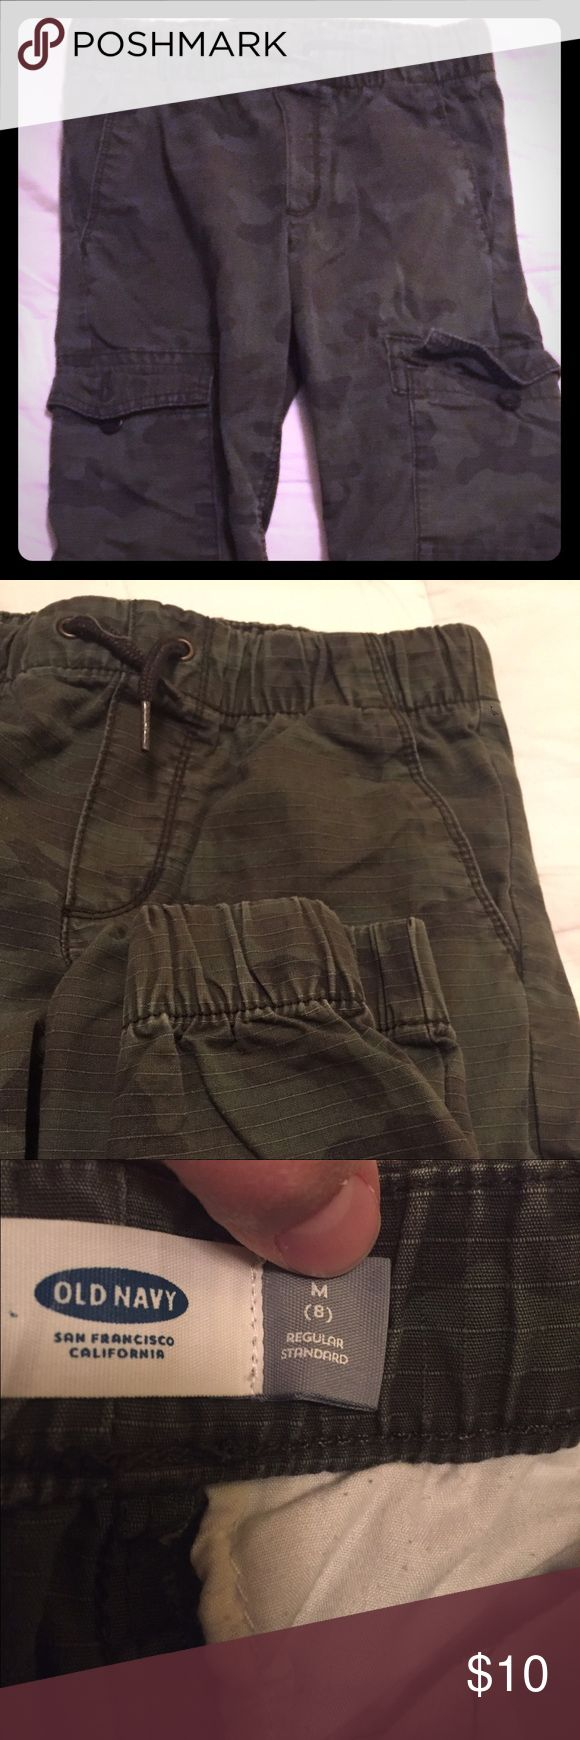 Boys Old Navy Jogger Style Pants 👖 Boys Old Navy Jogger Style Khaki Pants 👖 These pants are great for kids who are always stepping in their pants.  Look great for school!  My kiddo loves this style and always requests more vs. jeans!  Great condition! Old Navy Bottoms Casual